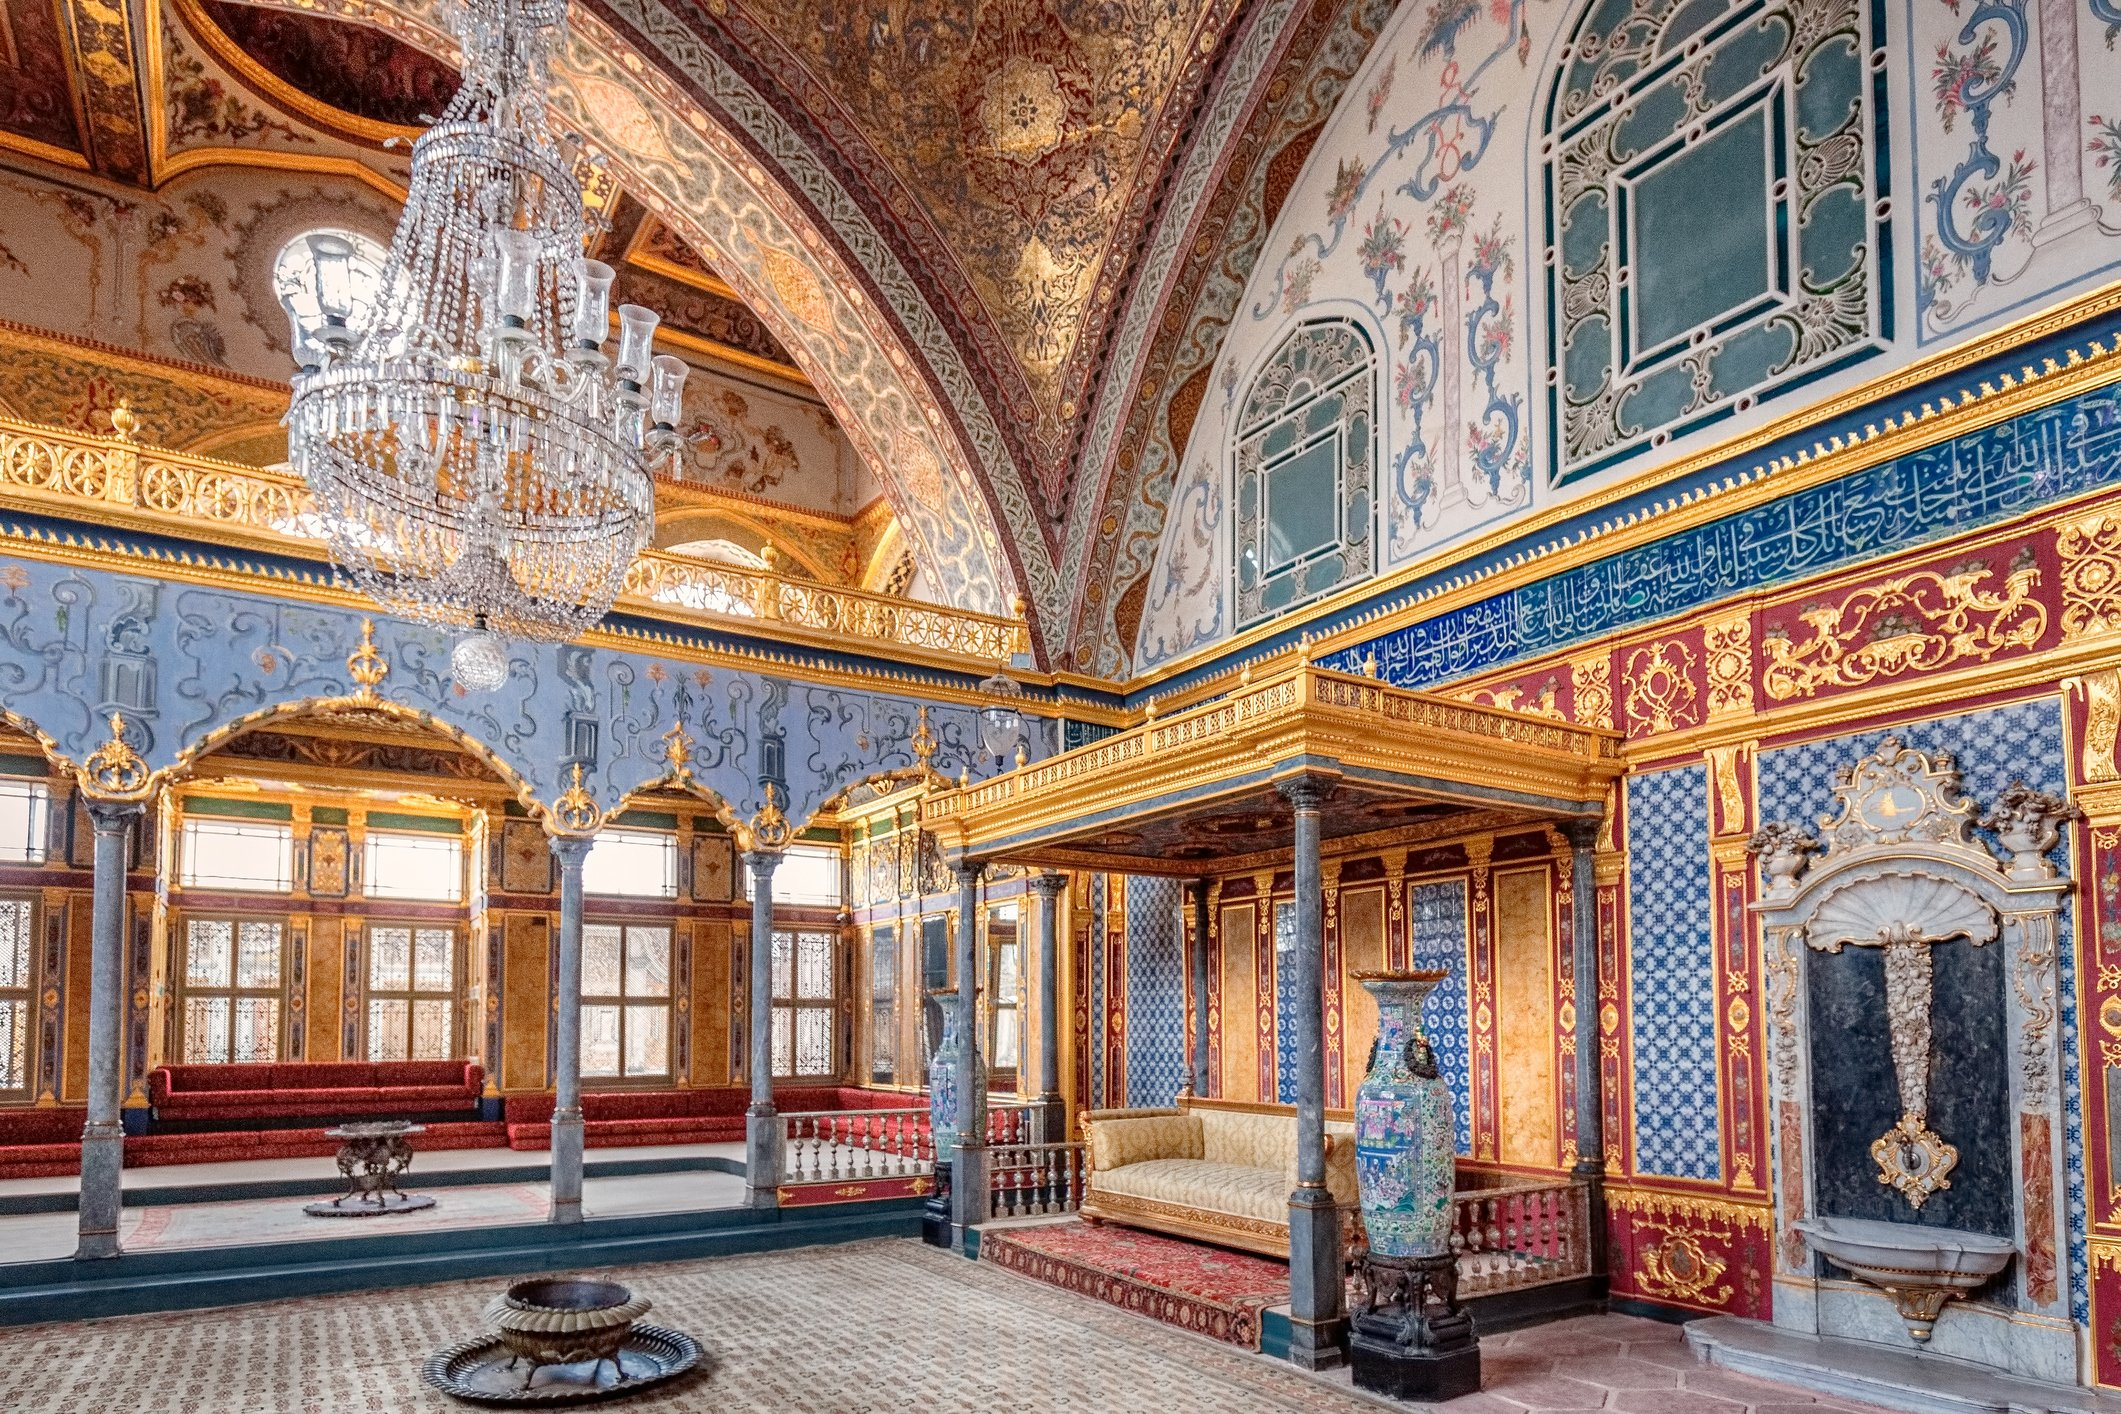 Istanbul's famed Topkapı Palace, the court of the Ottoman sultans, is available for a virtual tour. (iStock Photo)